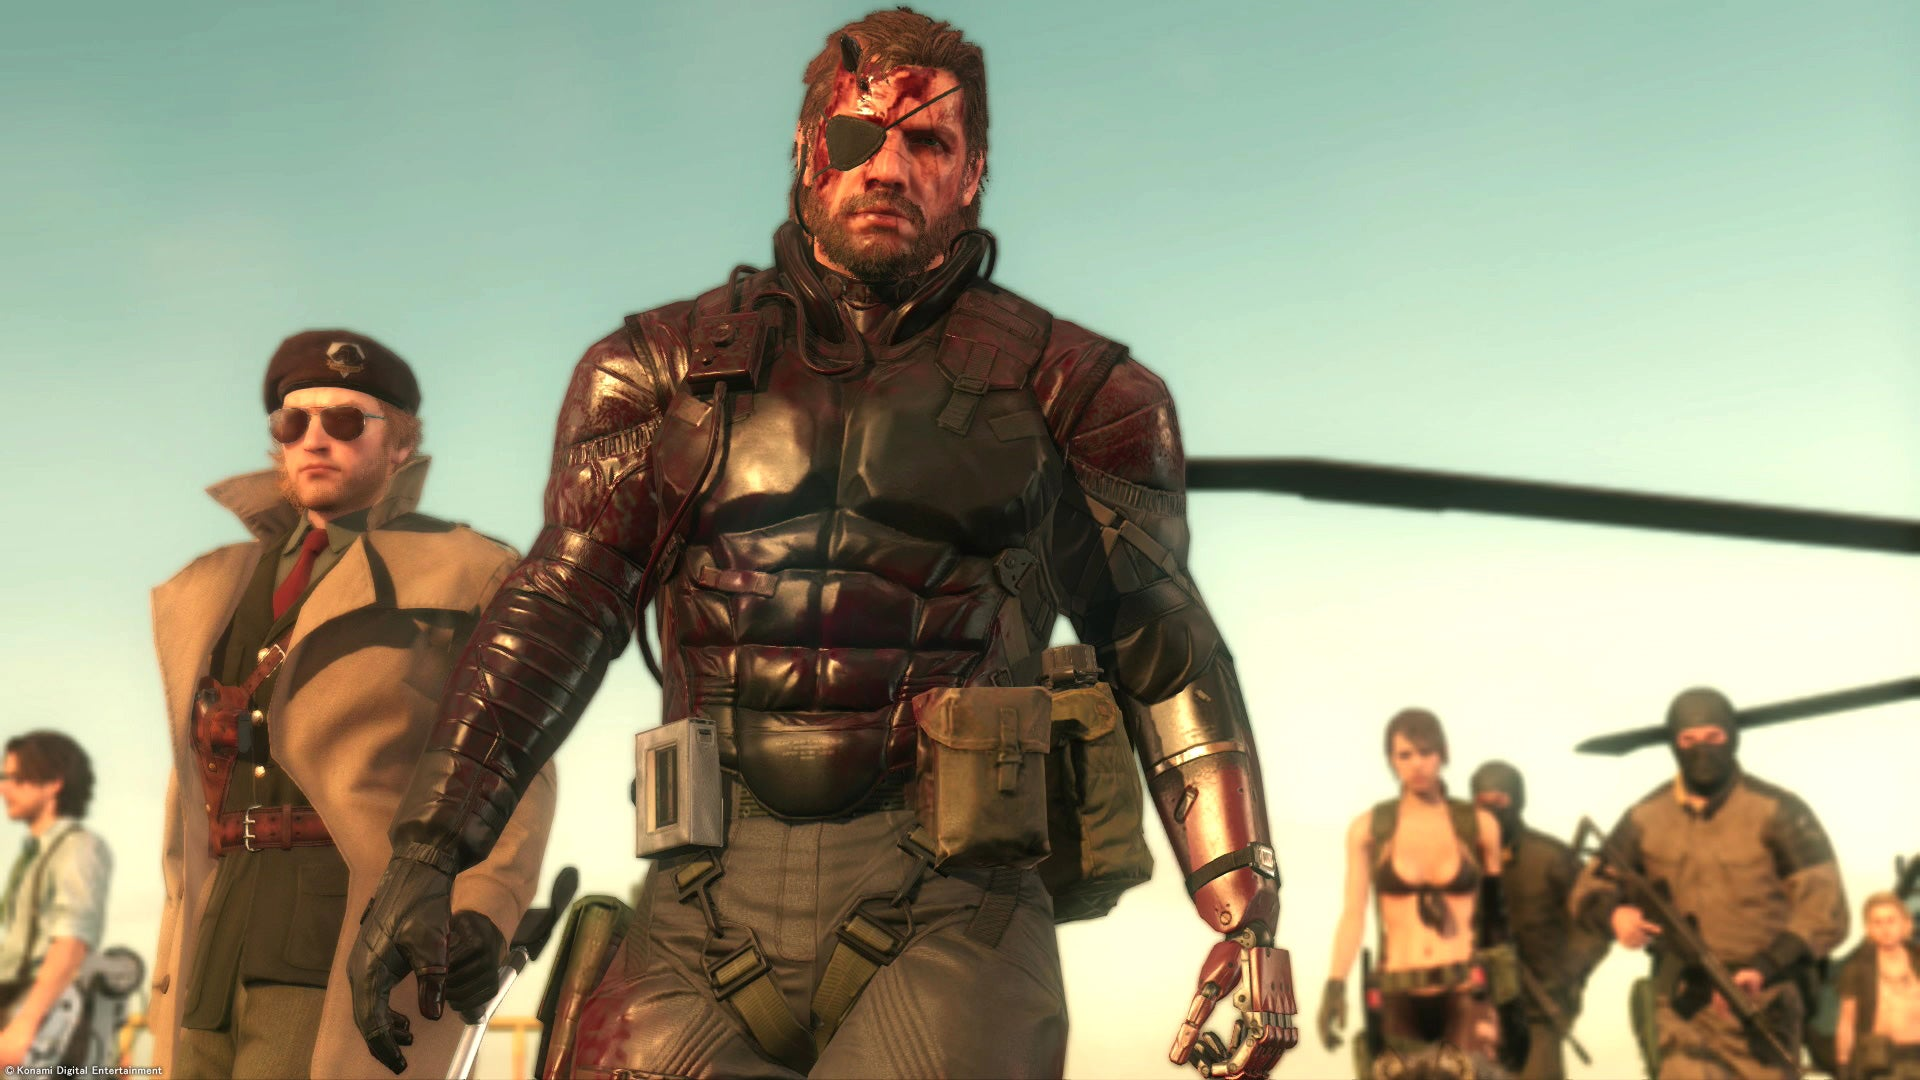 It Seems That Metal Gear Solid V And Vanquish Will Be Free For XBL Subscribers Next Month